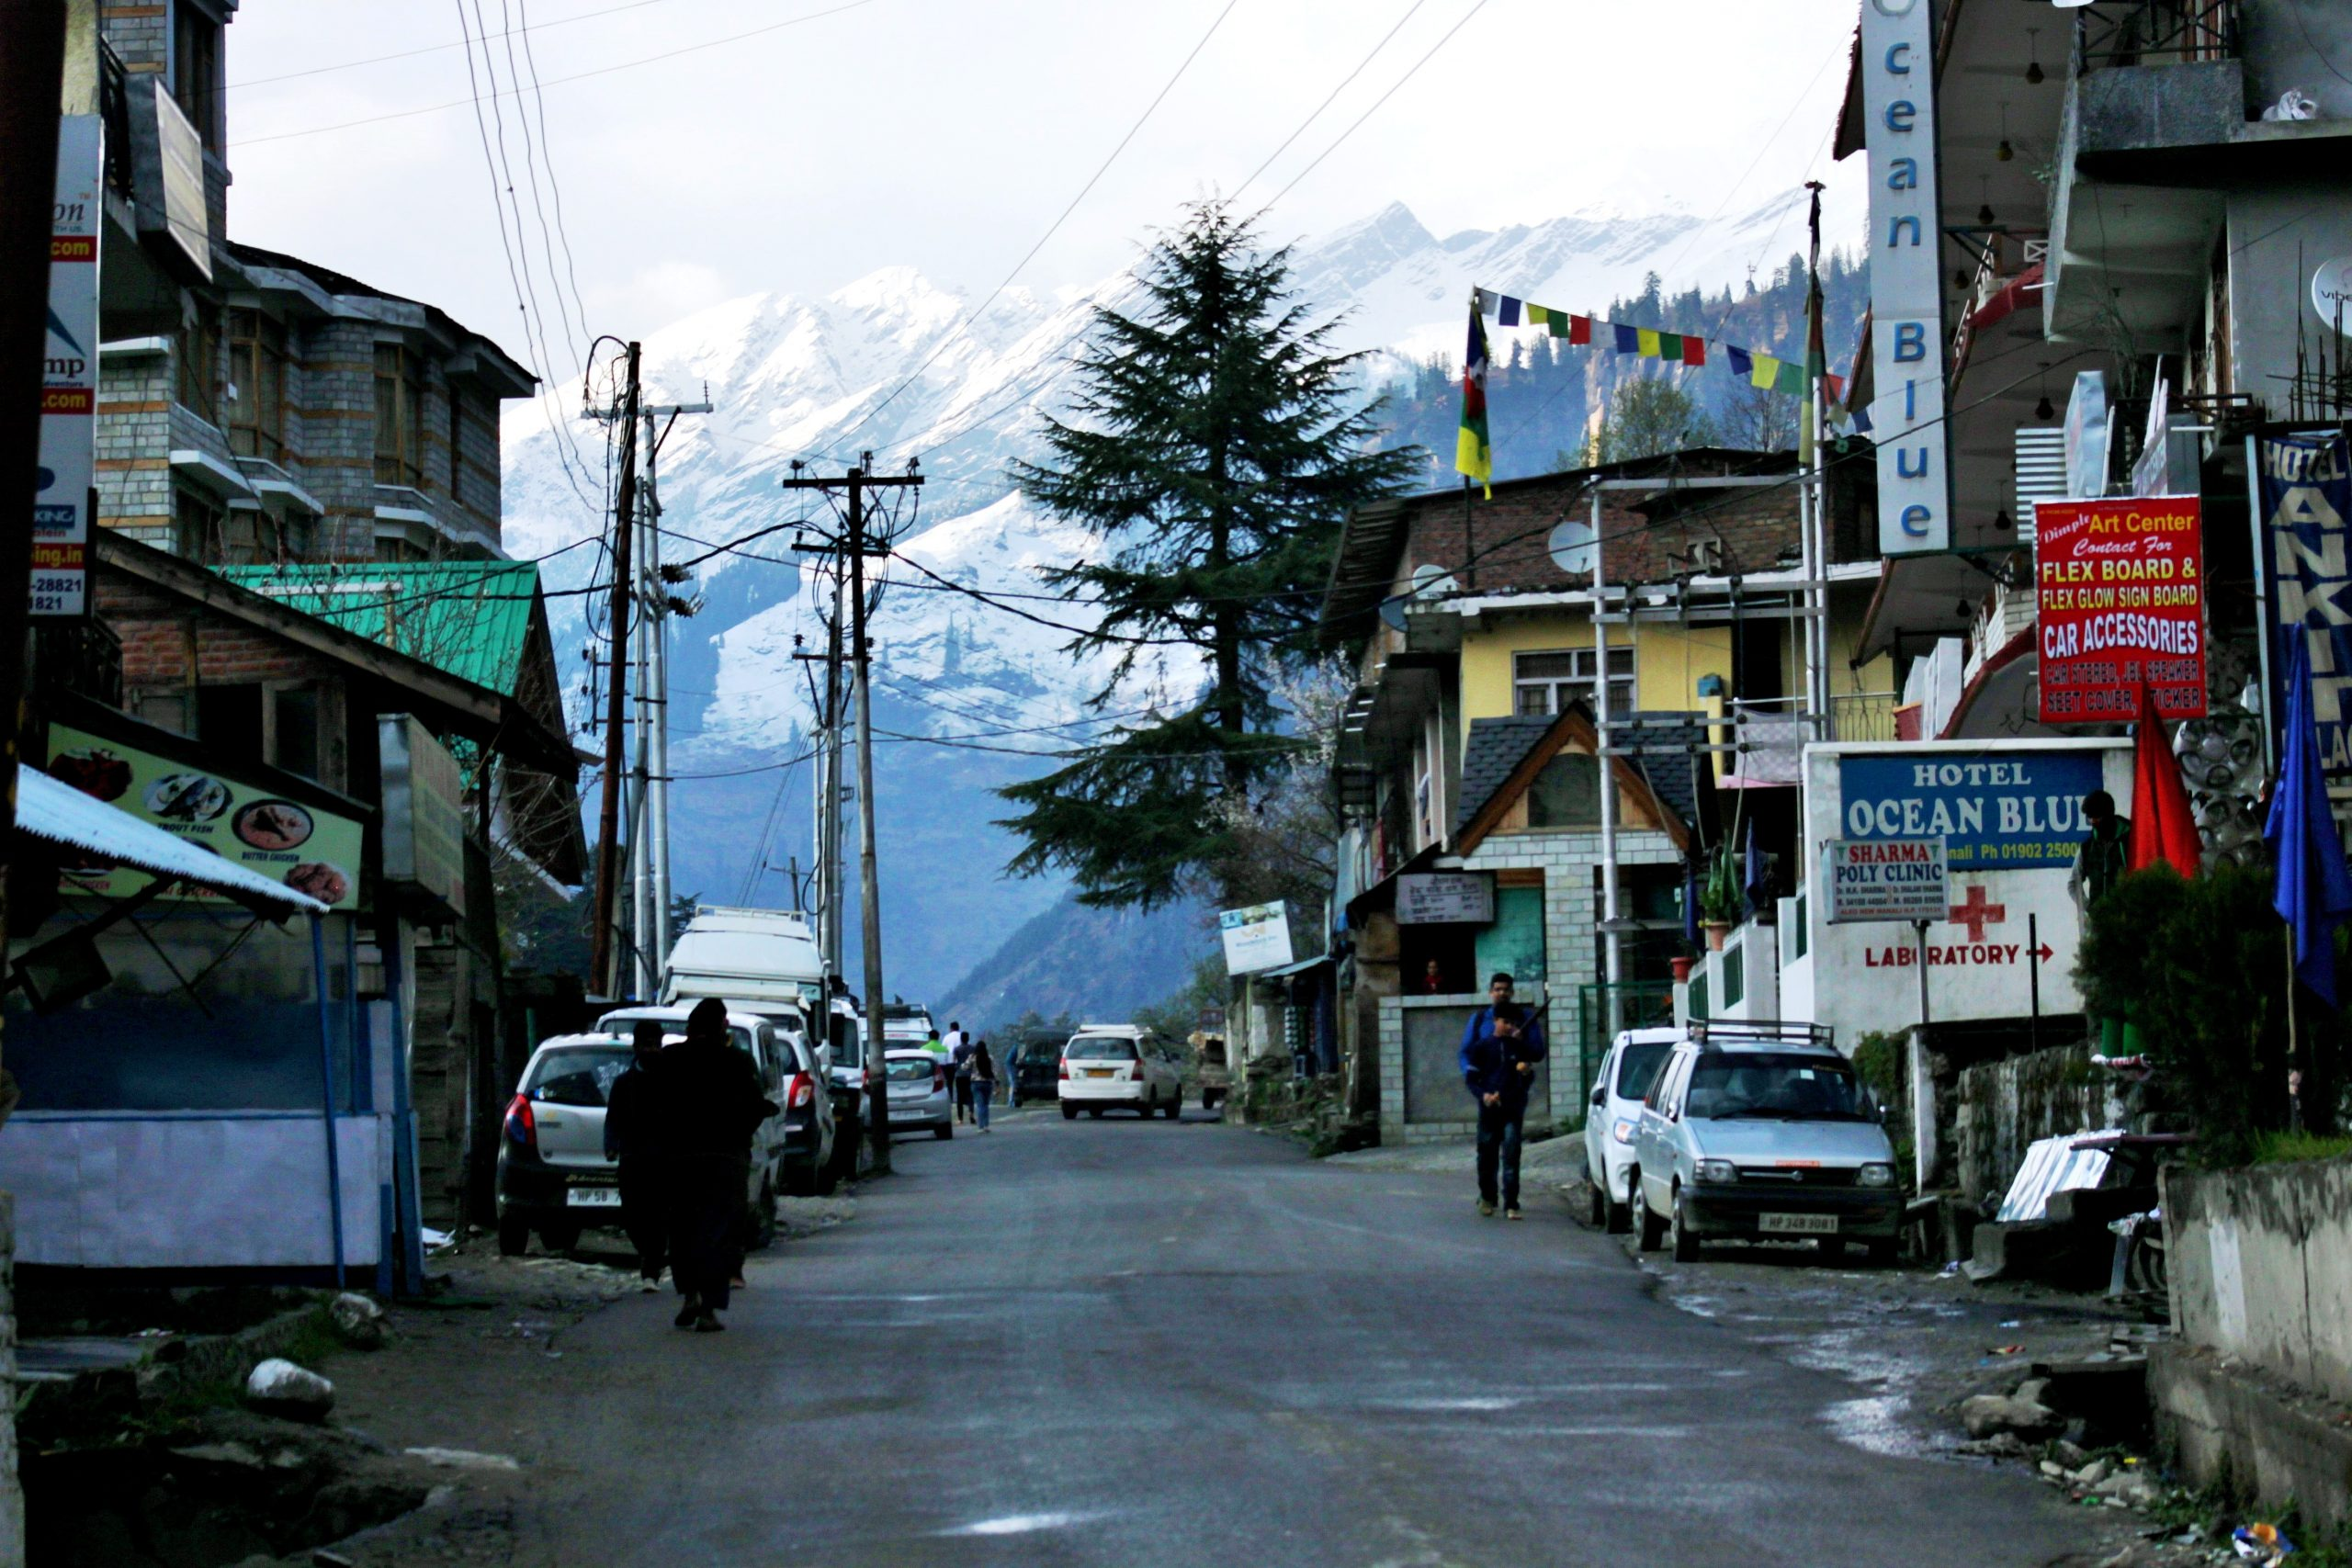 A market in Manali, Himachal